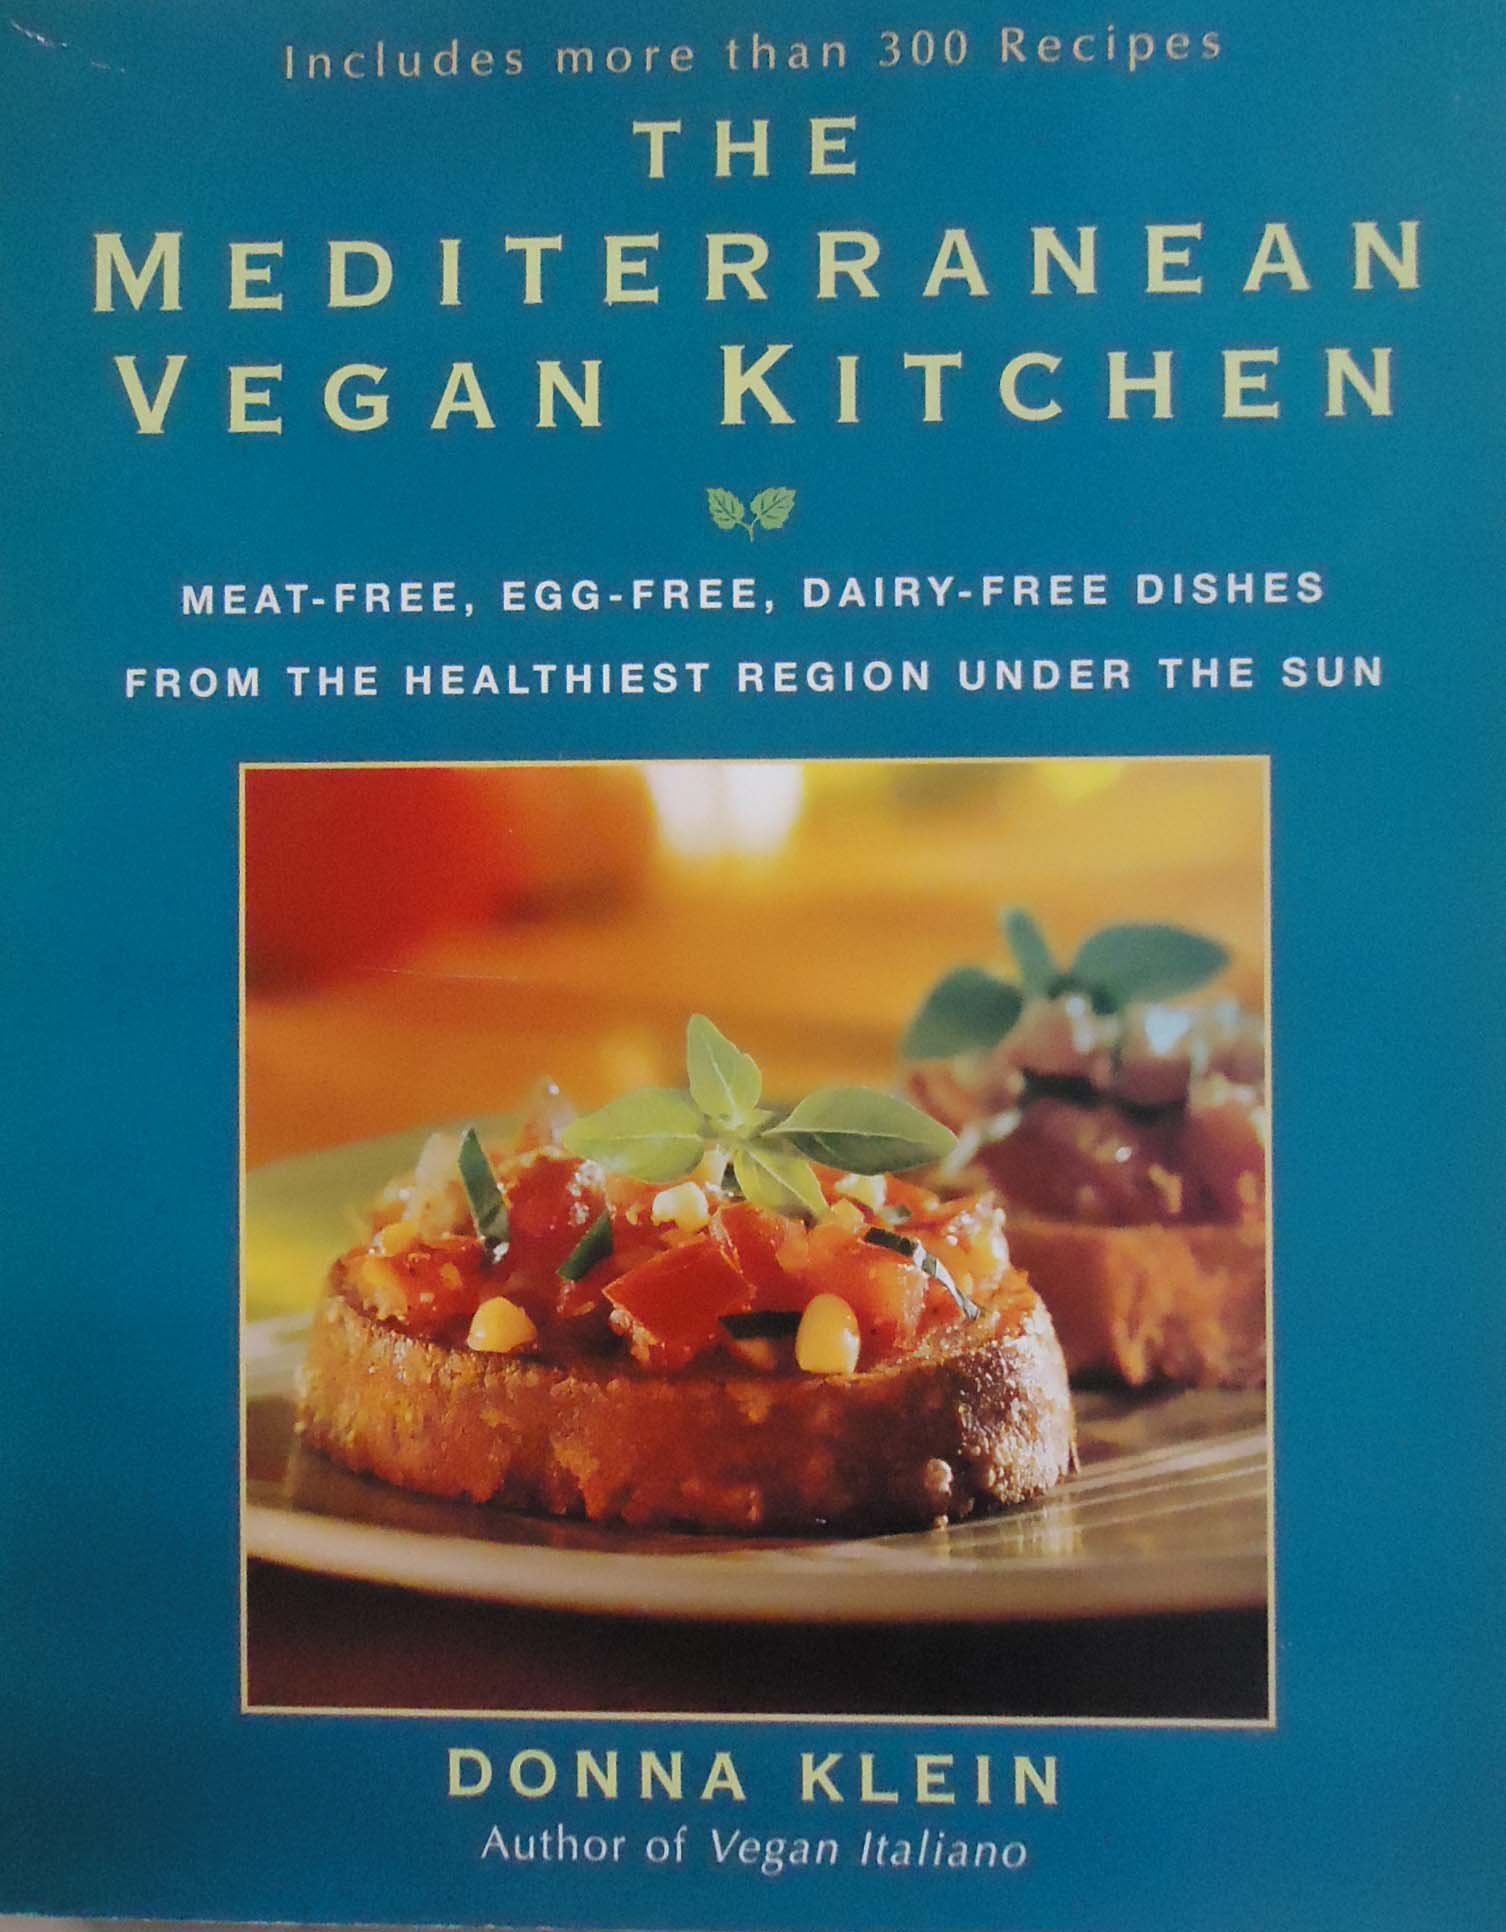 The Mediterranean Vegan Kitchen: Meat-Free, Egg-Free, Dairy-Free ...